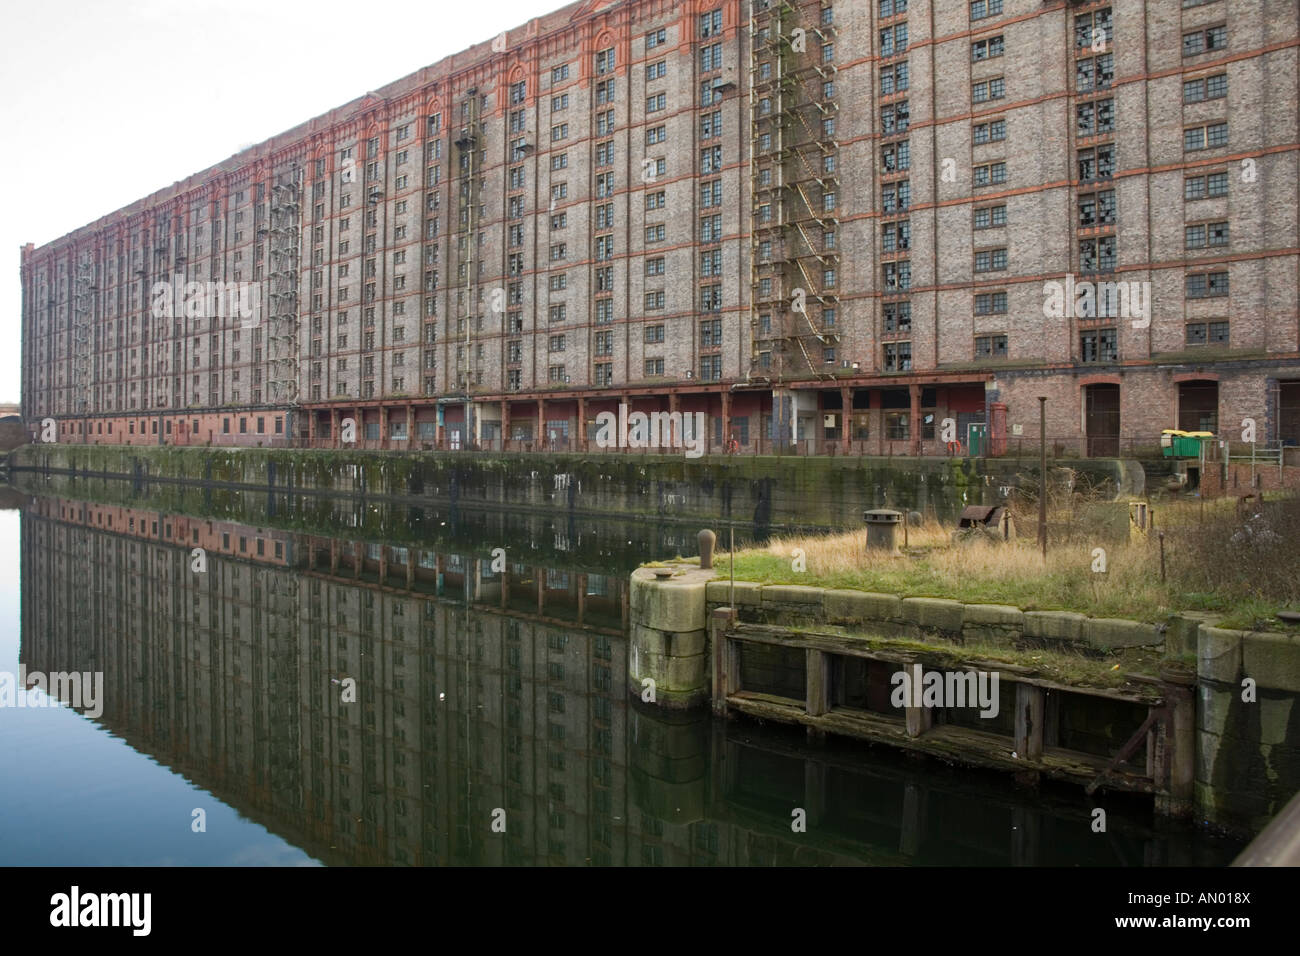 Stanley Dock built in 1848 Liverpool  UK with a large tobacco warehouse adjacent reputed to be the largest in Europe Stock Photo